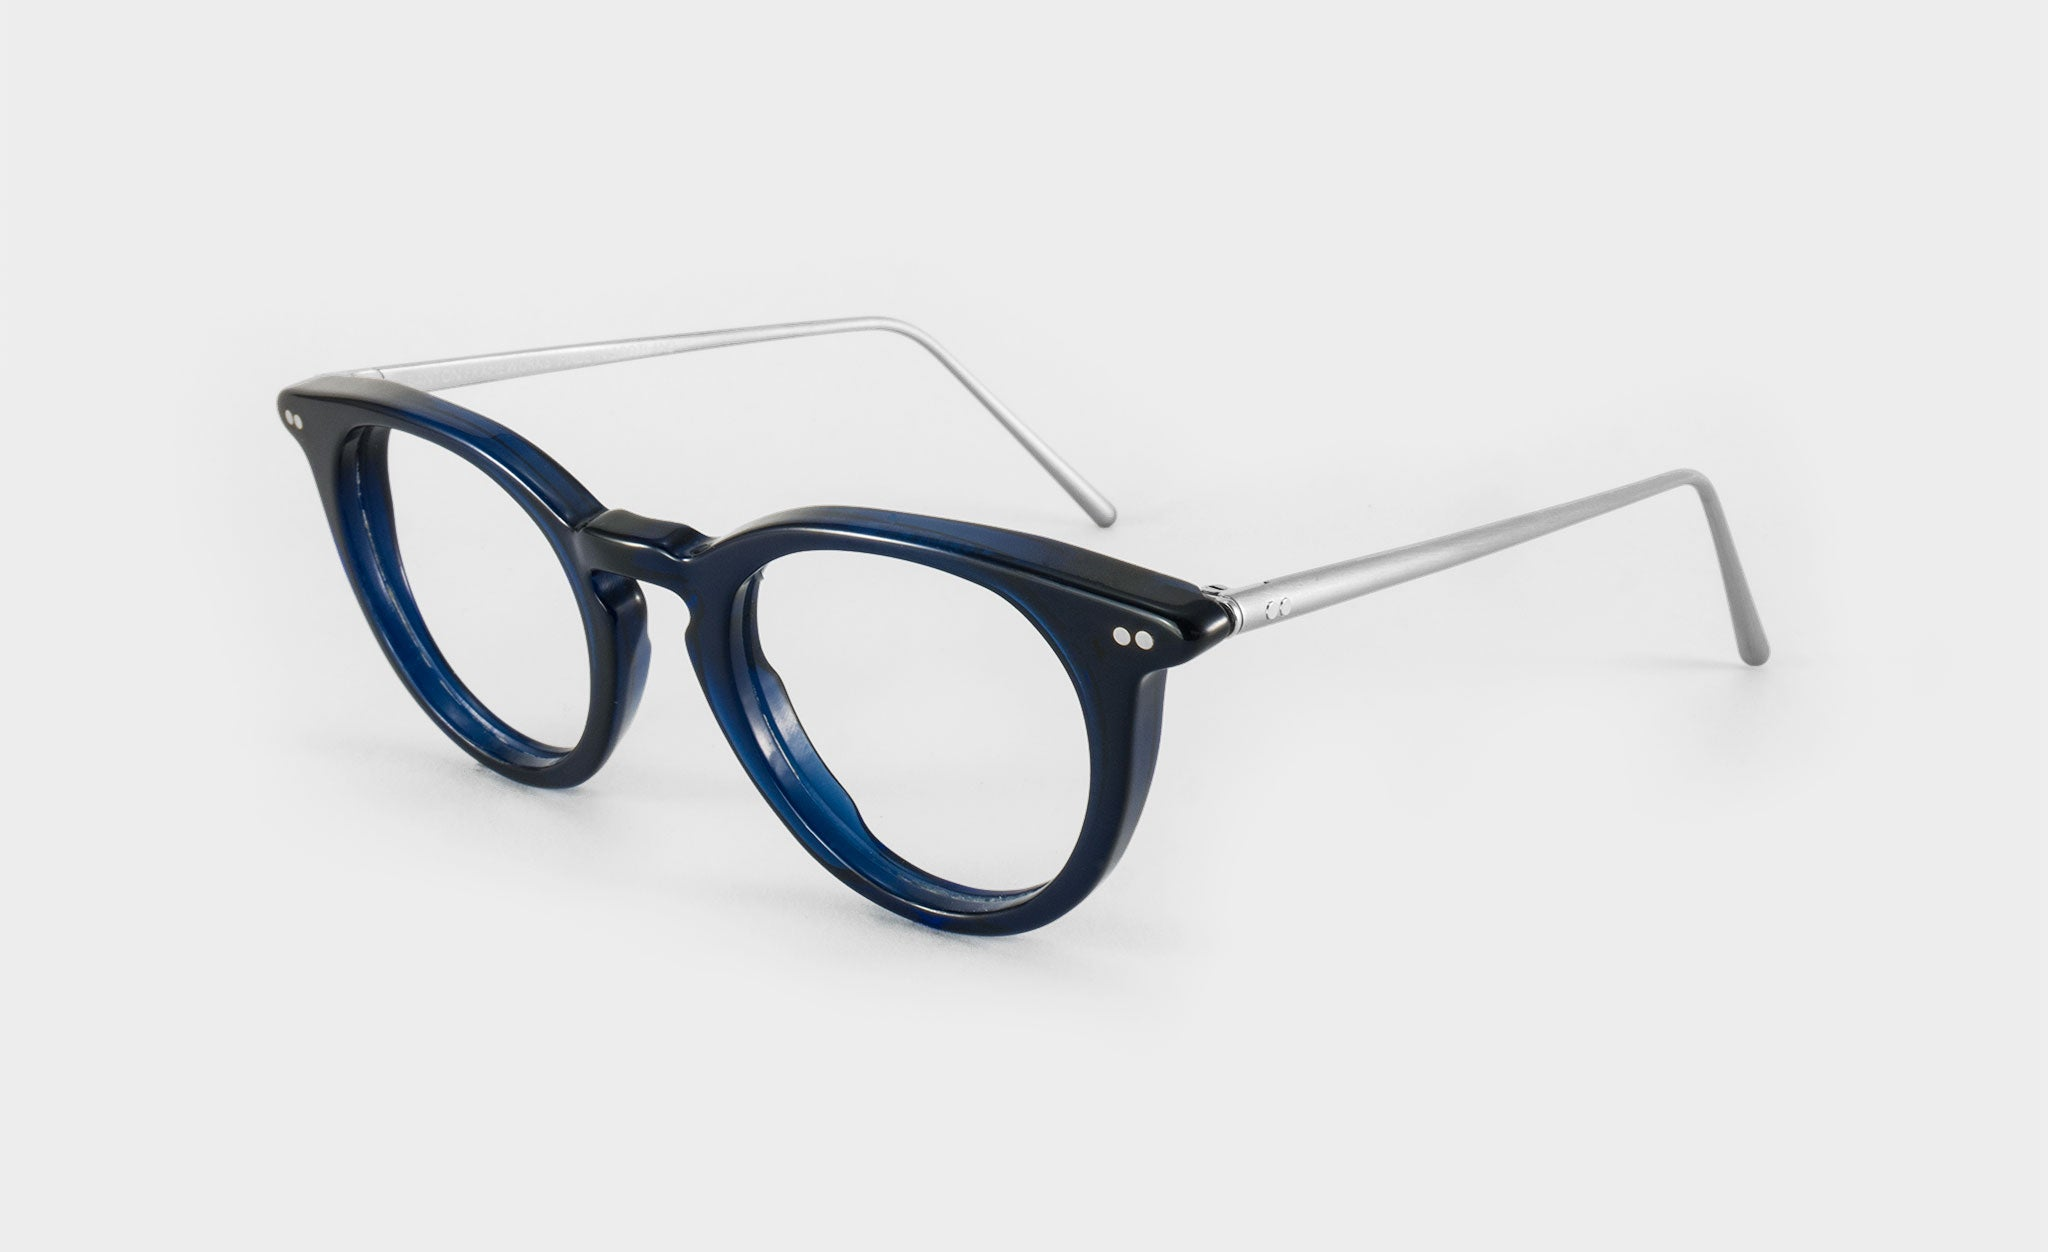 Womens-Round-Blue-Glasses-Frame-side-view